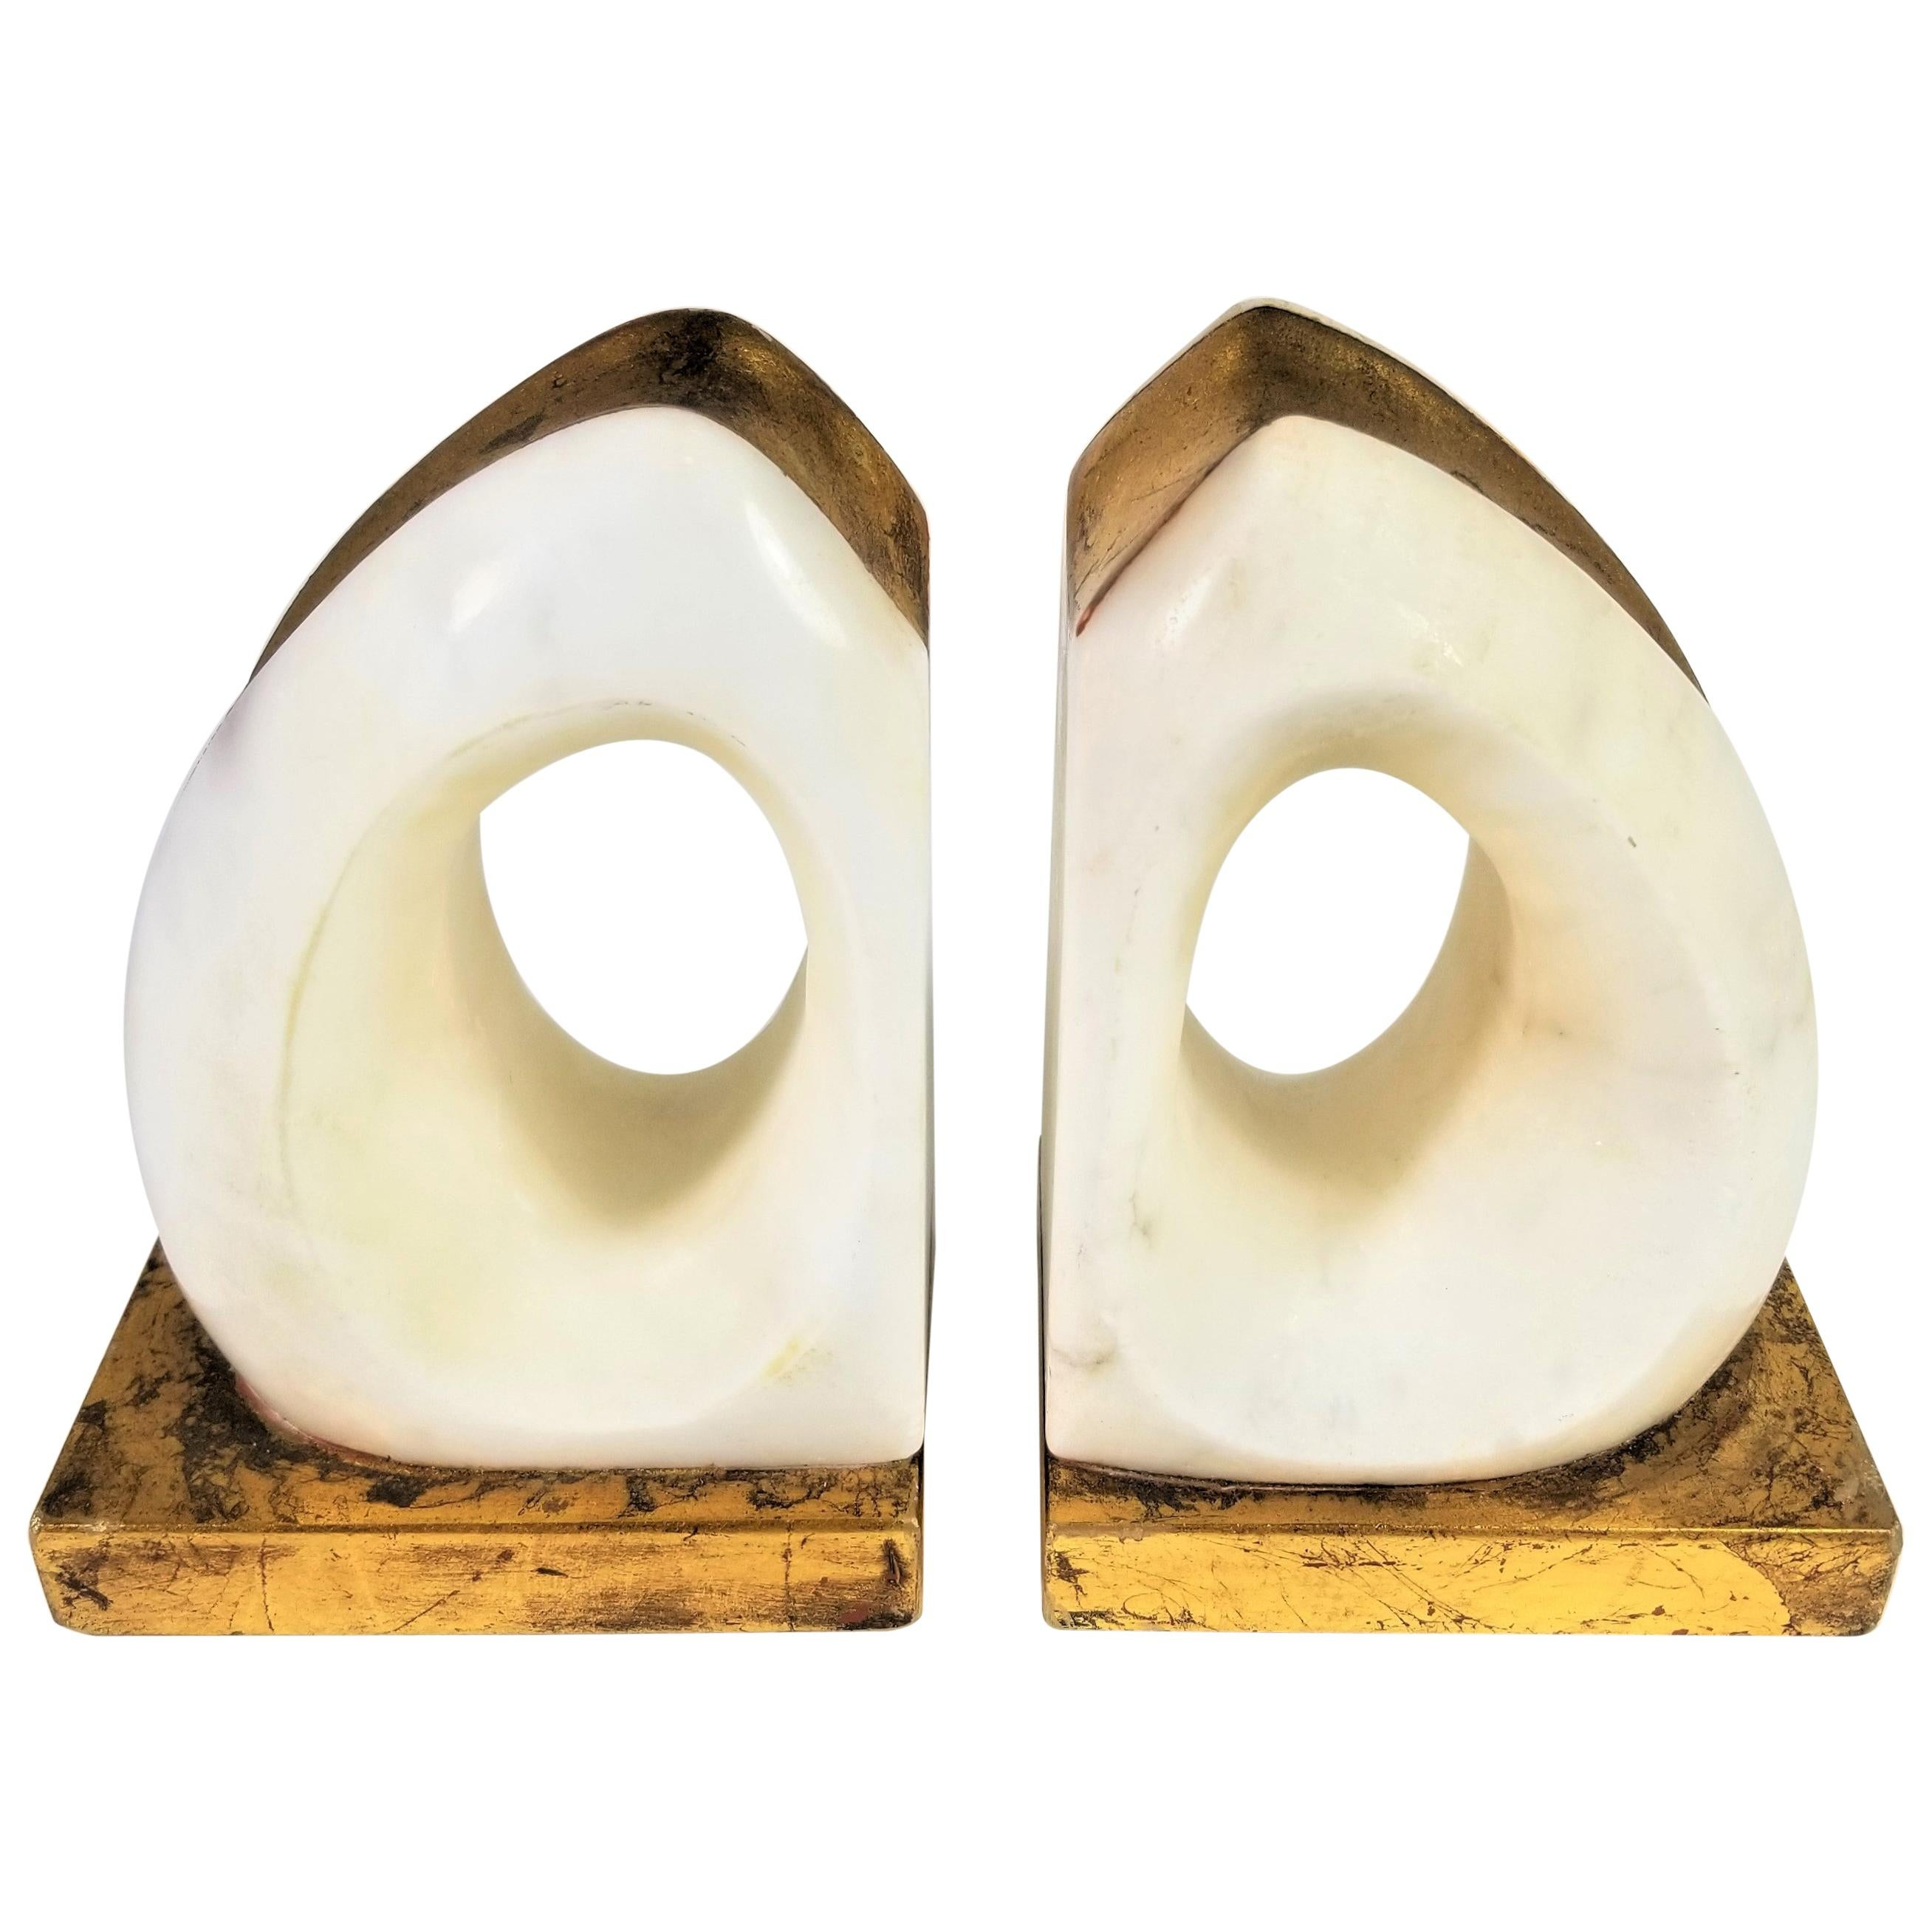 Italian Sculptural Alabaster Marble and Gilded Bookends Midcentury, 1970s-1980s